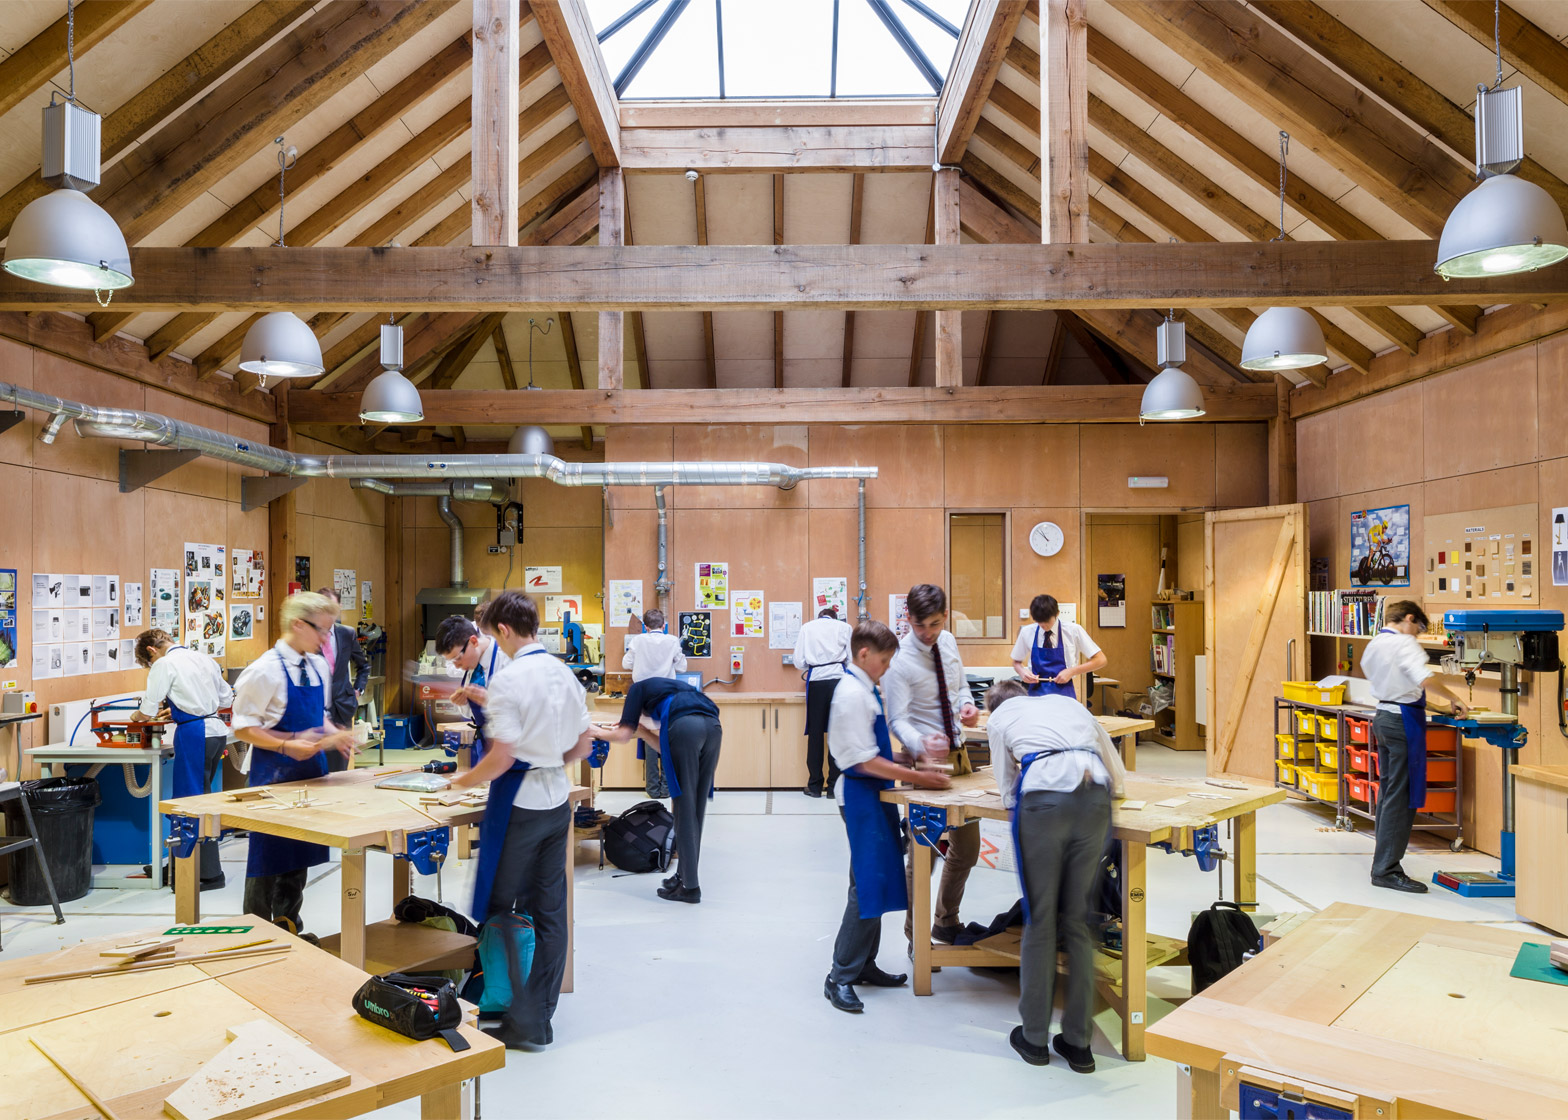 2 Of 6; Design And Technology Block At St Jamesu0027s School By Squire And  Partners Architects.